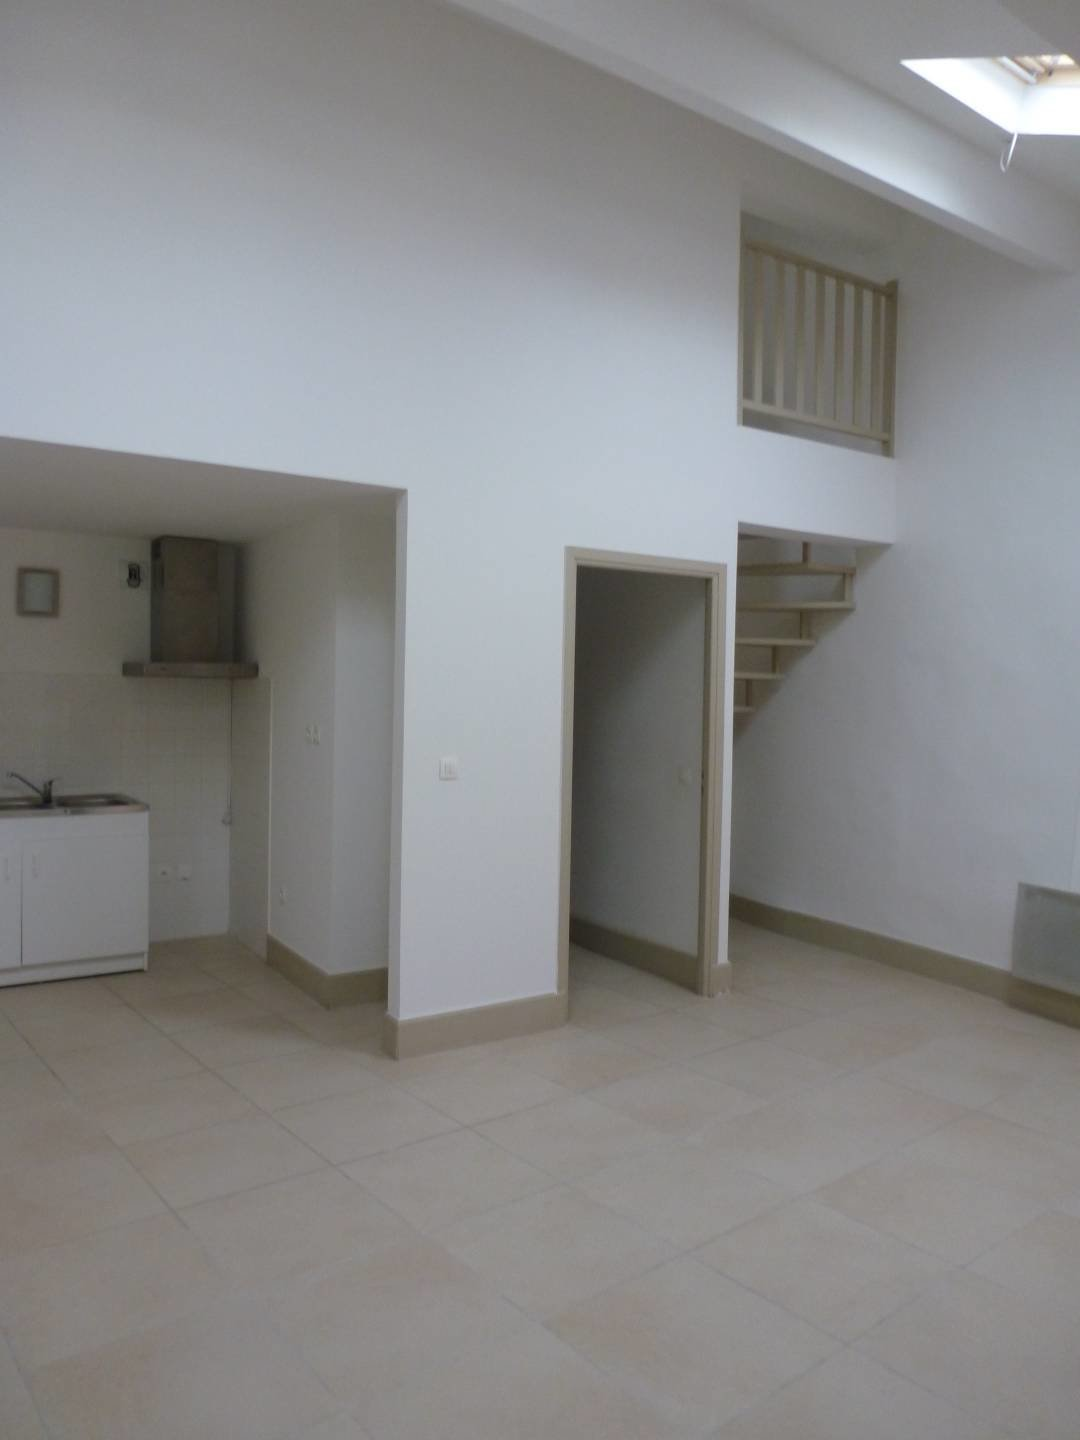 Sale Apartment - Narbonne CENTRE VILLE